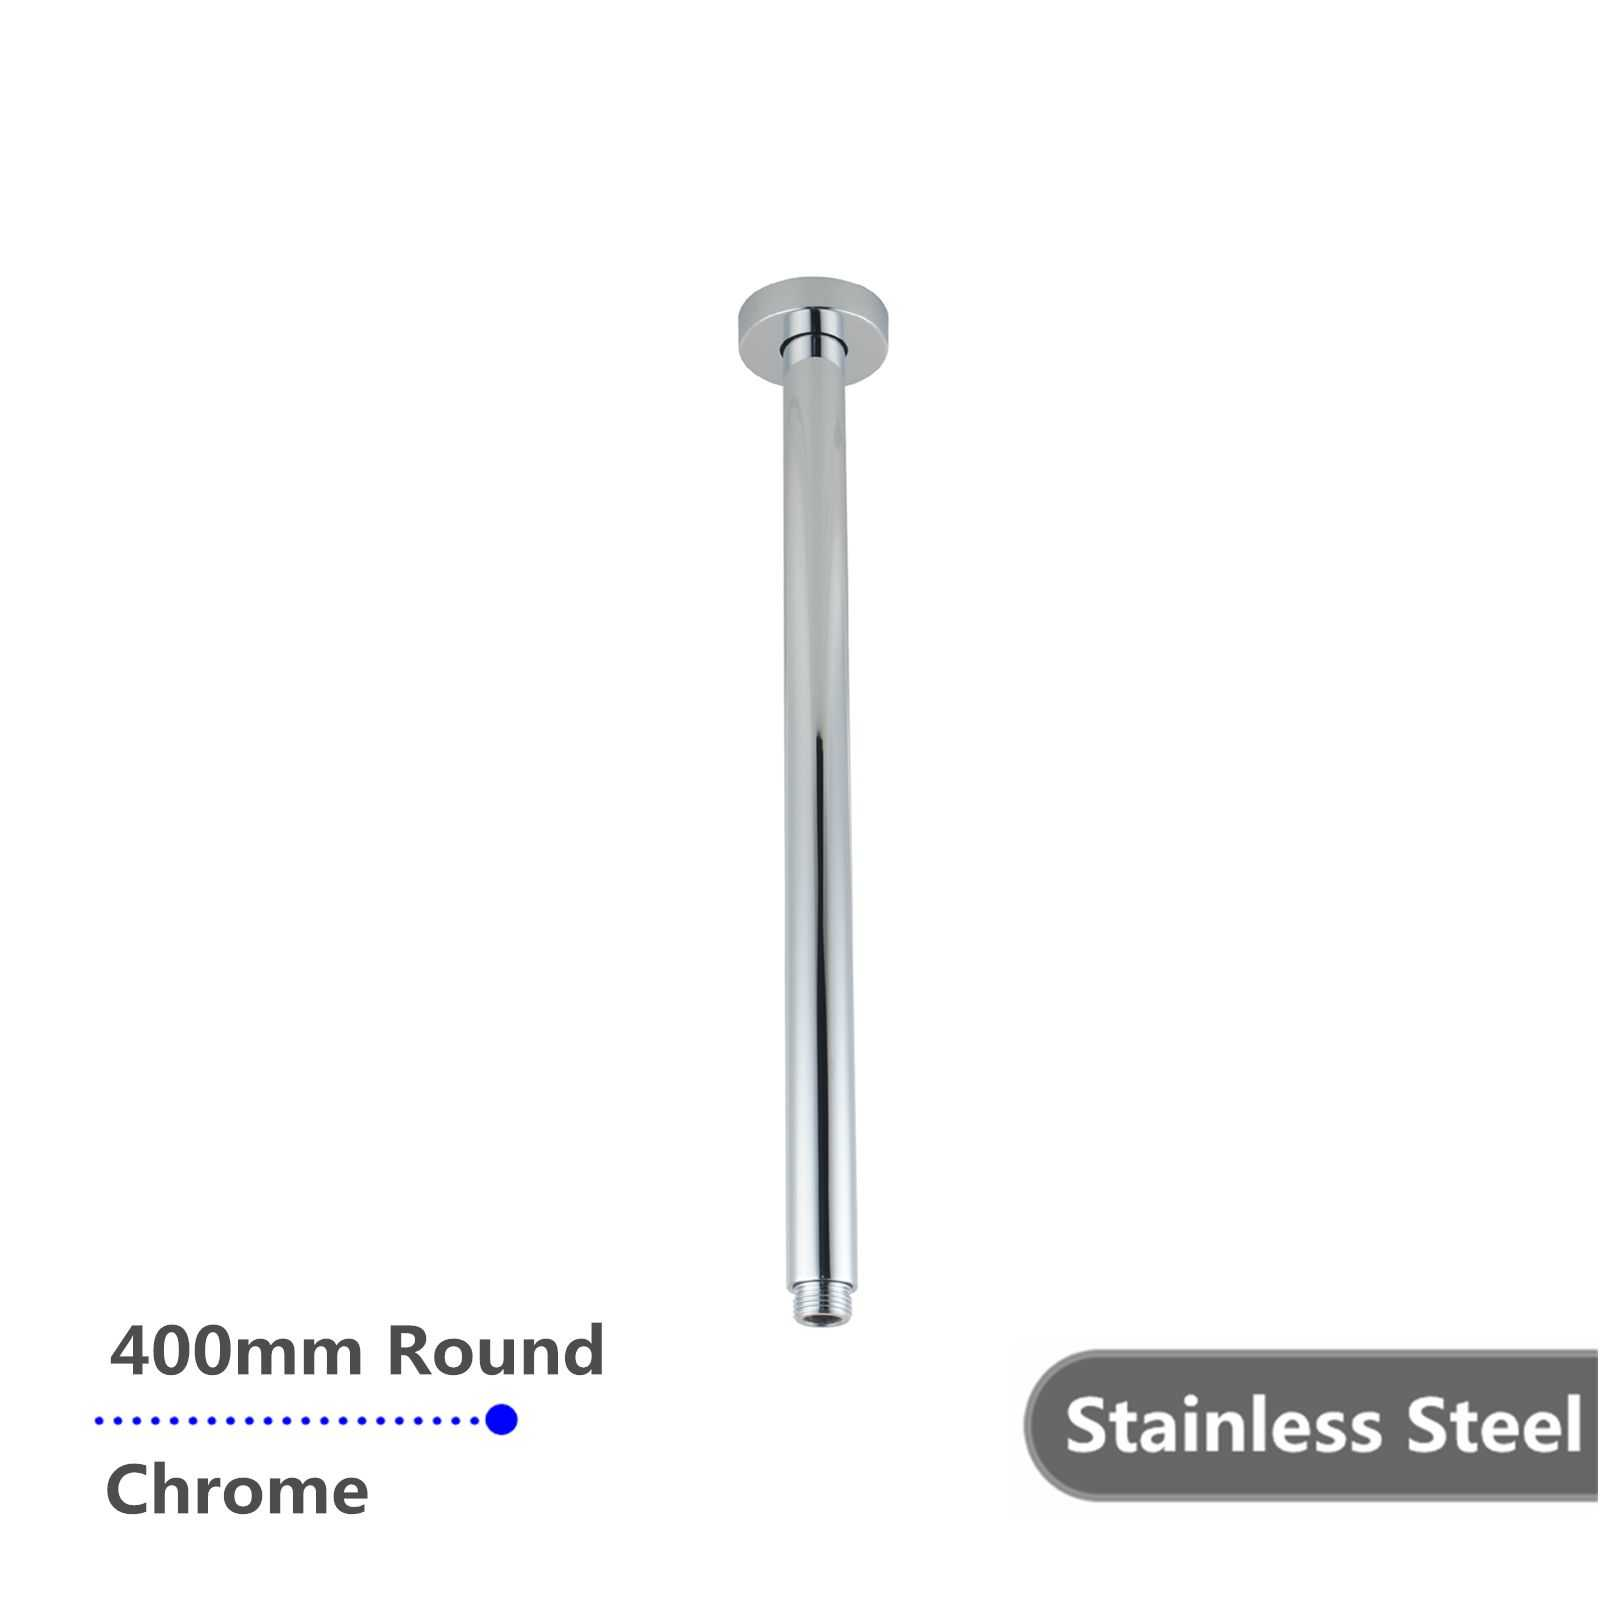 Round Chrome Ceiling Shower Arm 400mm